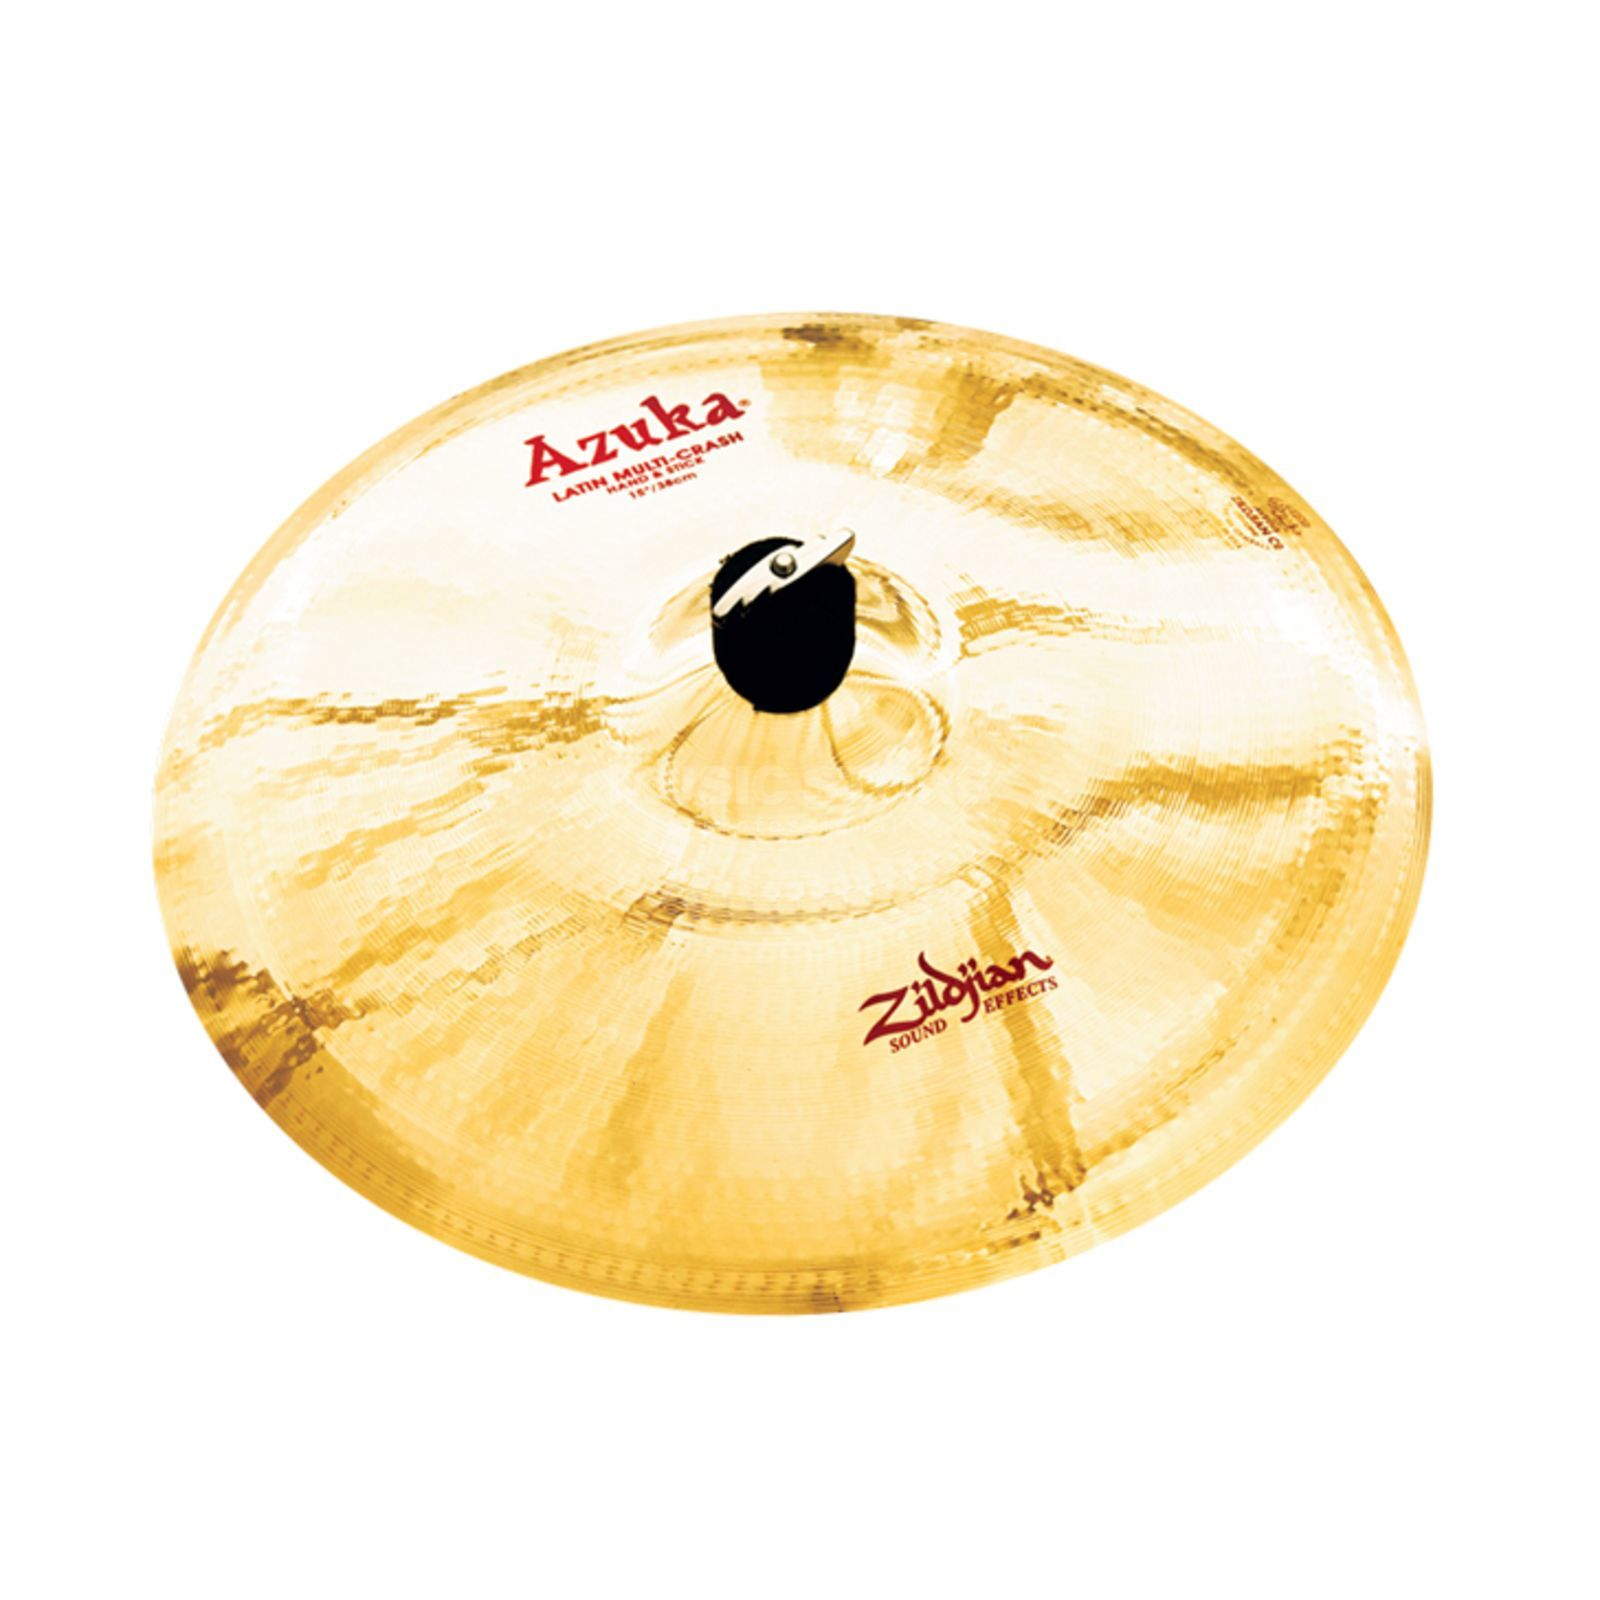 "Zildjian Azuka Latin Multi Crash 15"", Brilliant Finish Product Image"